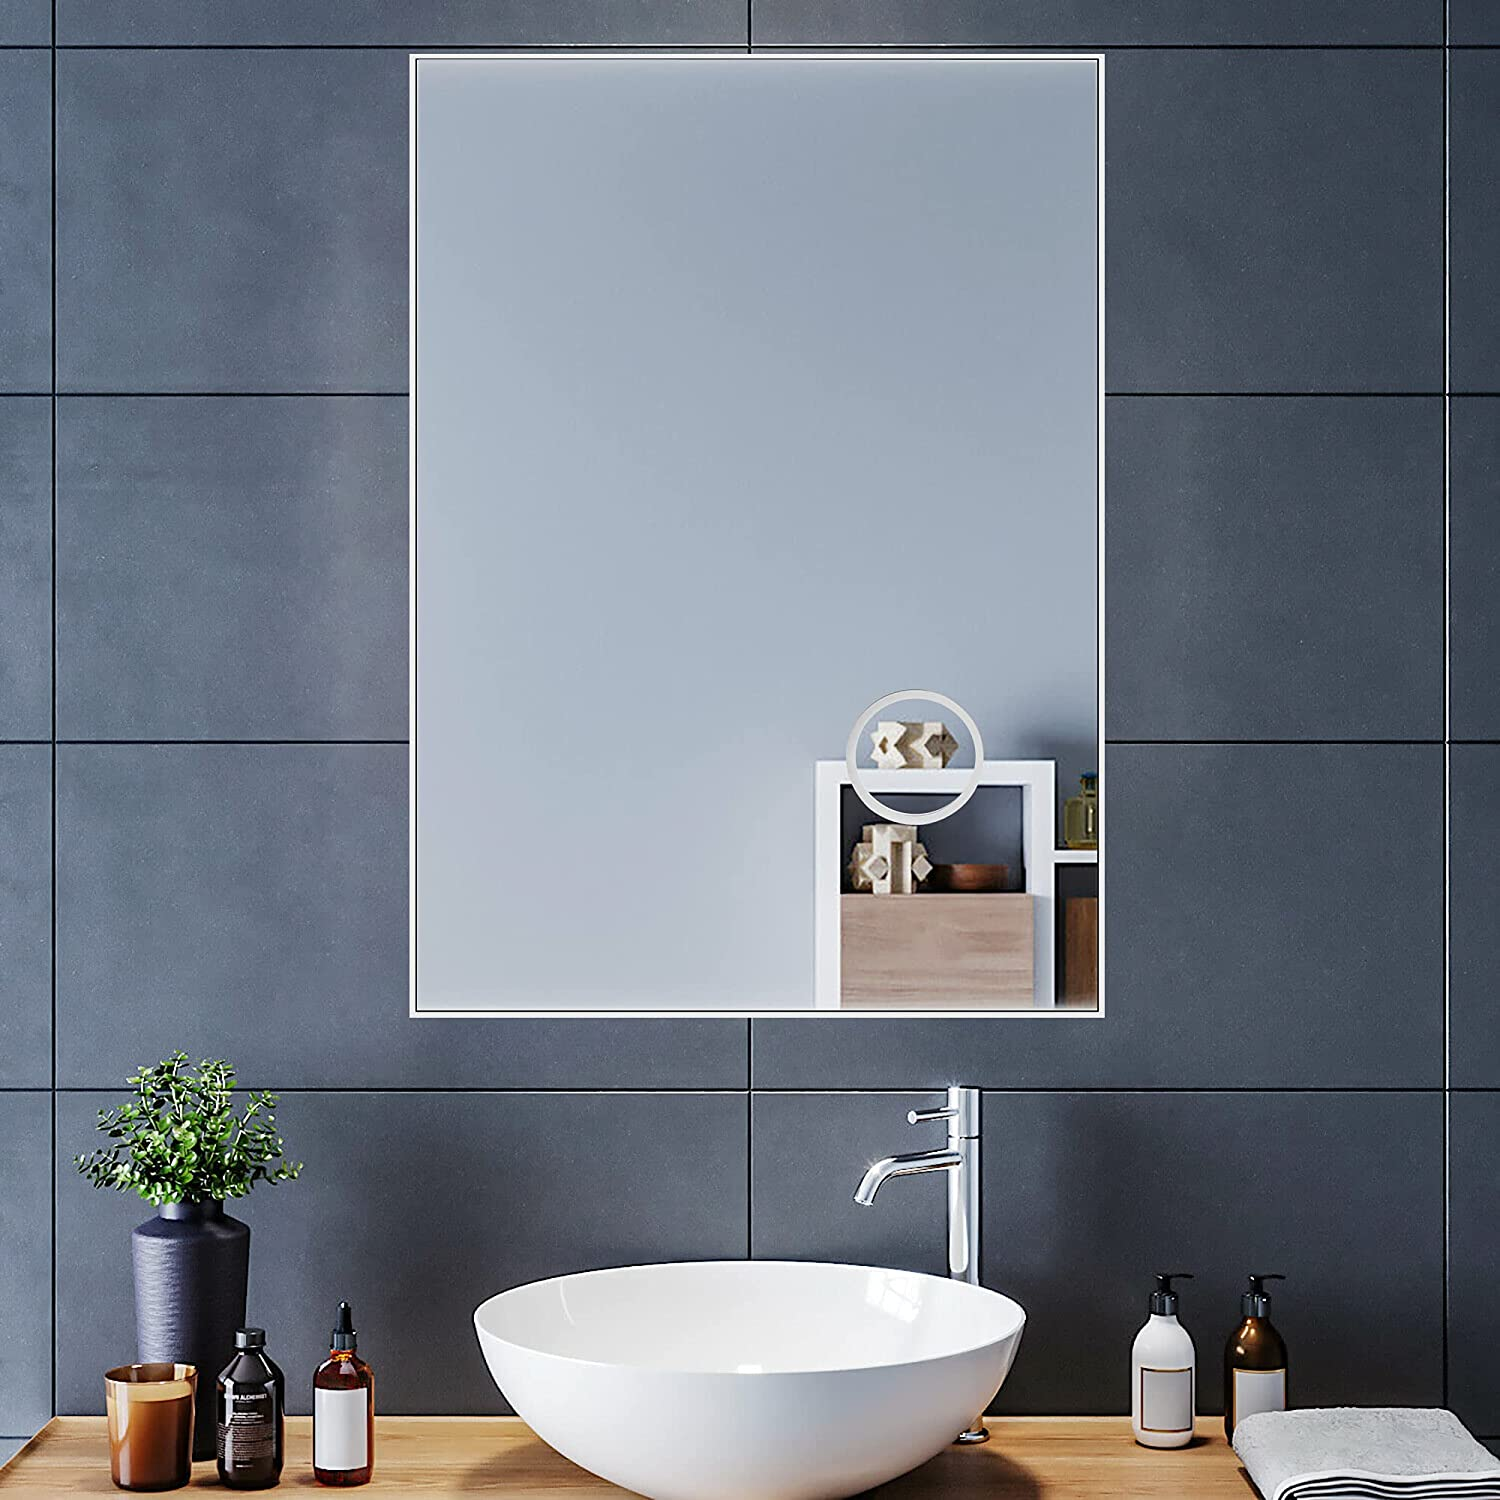 Buy Untrammelife Large Wall Mirror For Bathroom 29x42 Inch Rectangle Mirror With 3x Magnifier Makeup Vanity Mirror For Bathroom Hangs Horizontal Or Vertical Polished Nickel Finish Hellip Online In Indonesia B08yng7xs8